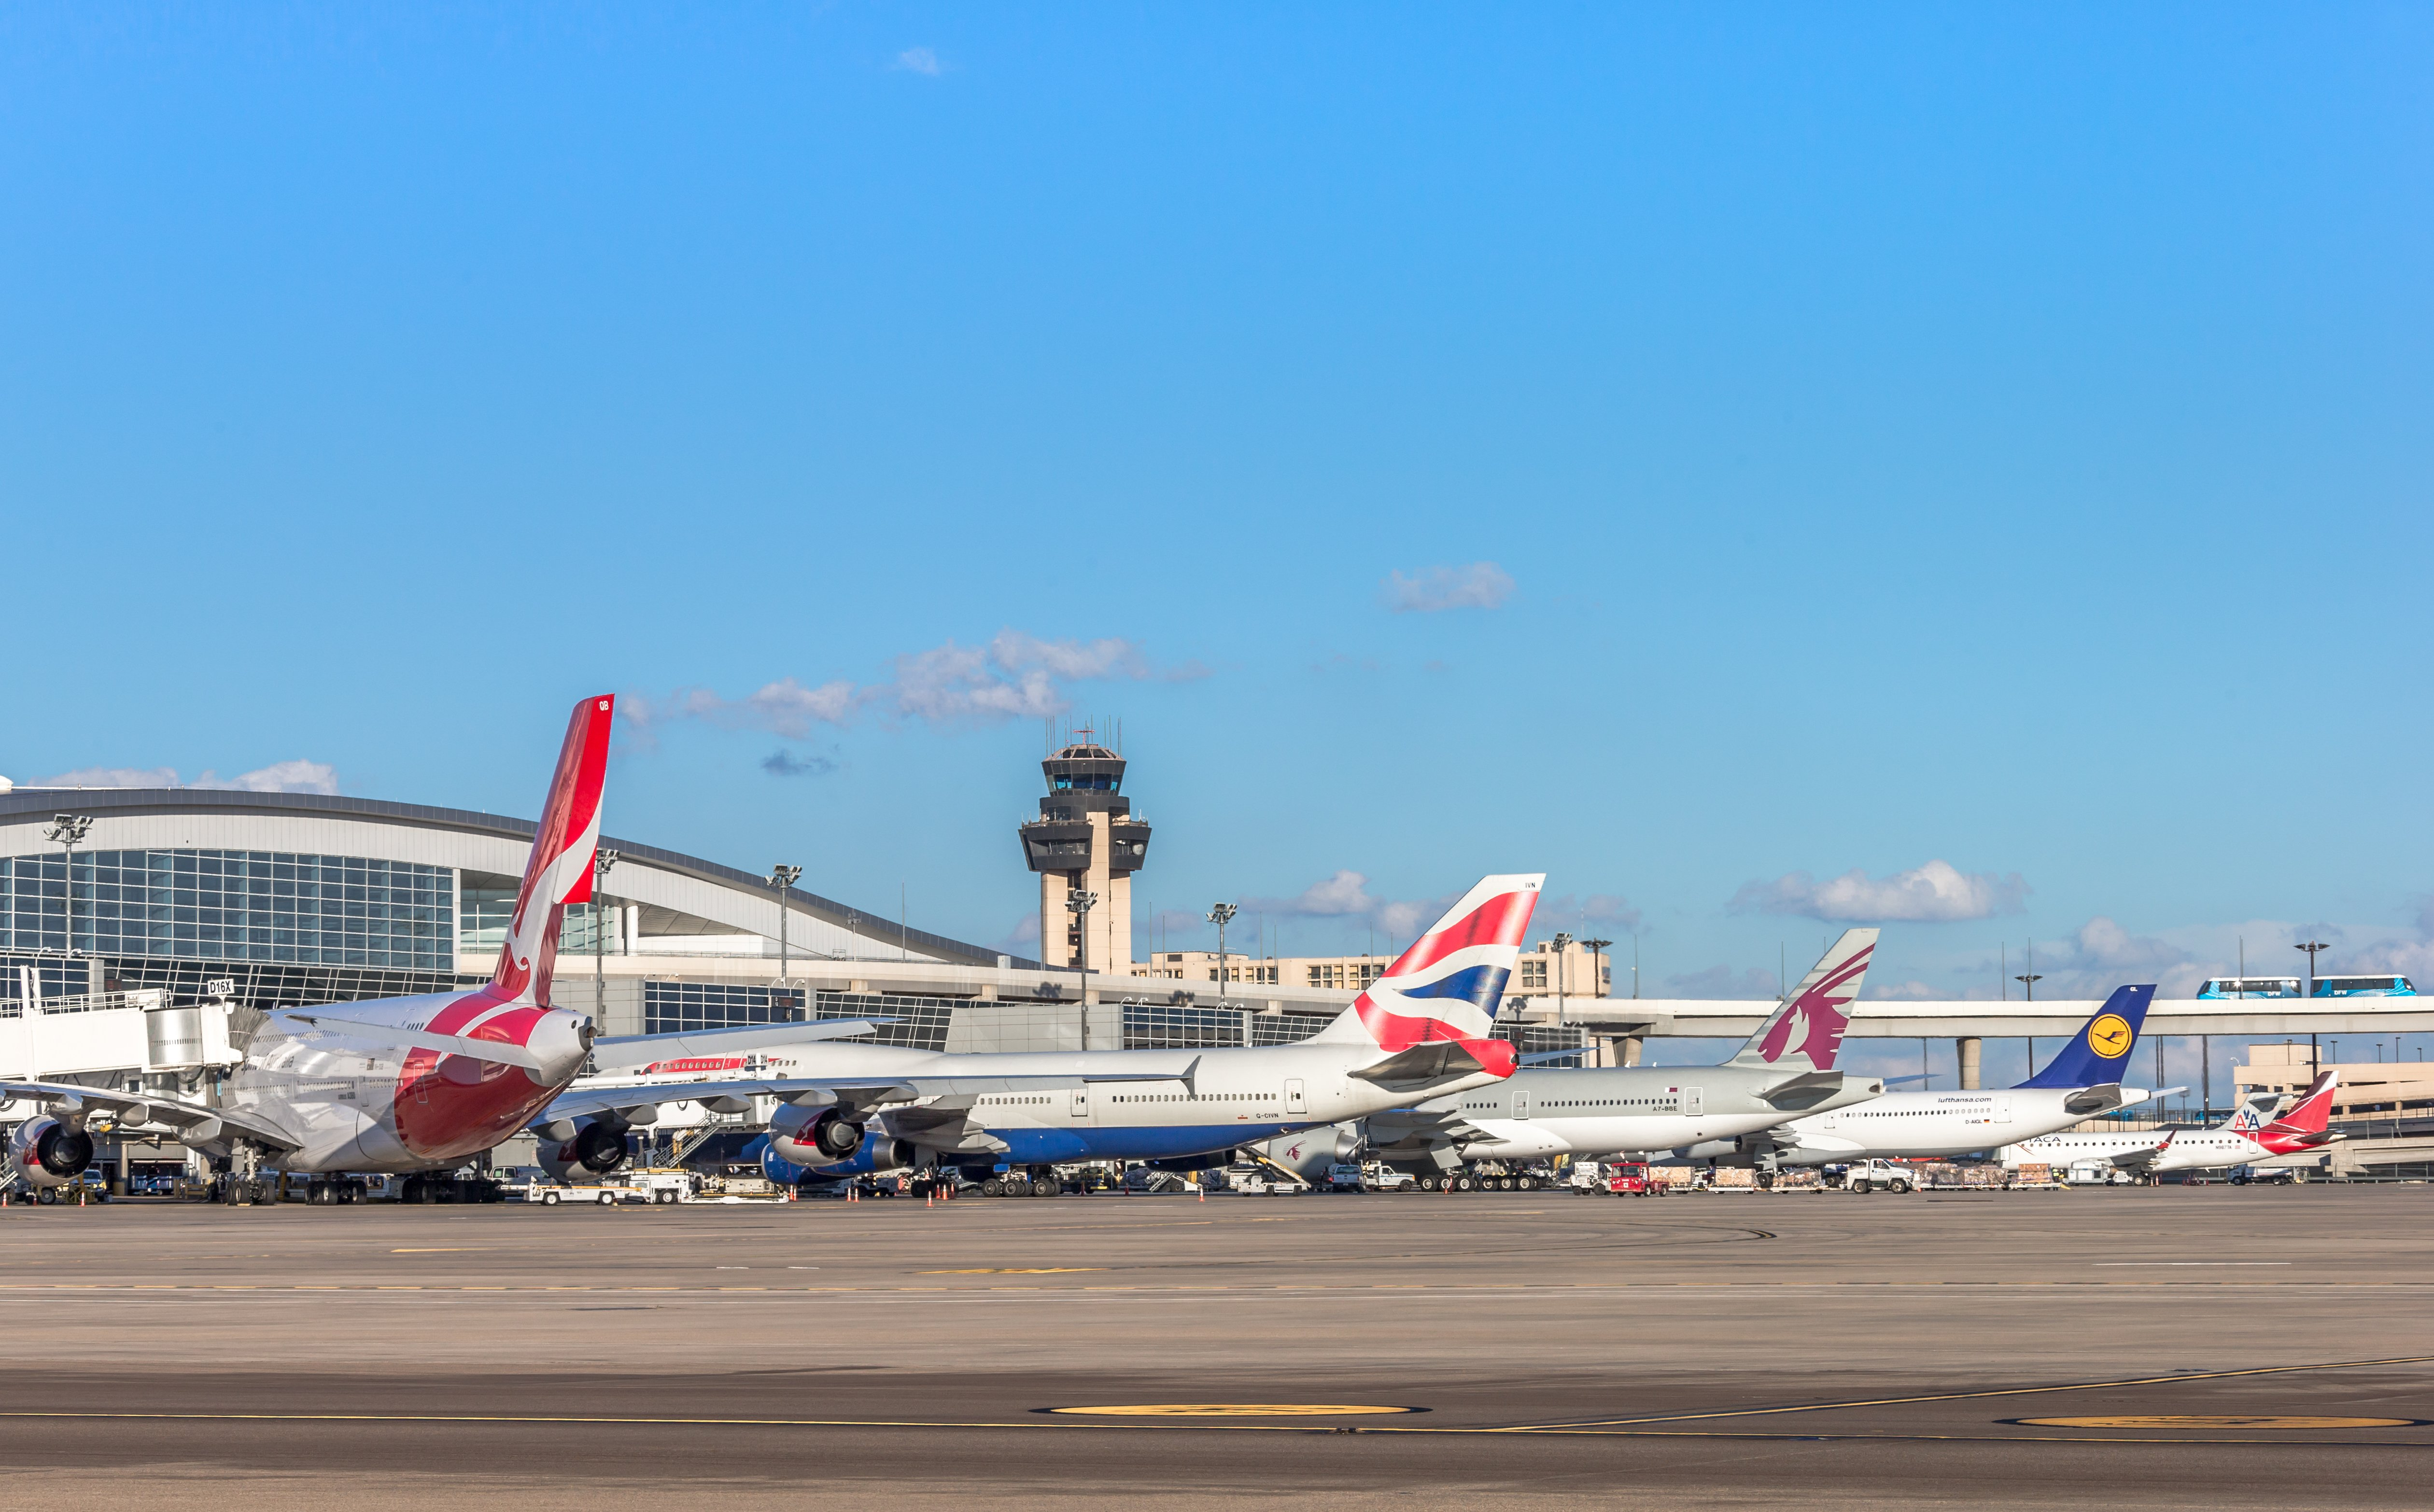 How to Get Between Terminals at Dallas/Fort Worth Airport (DFW)